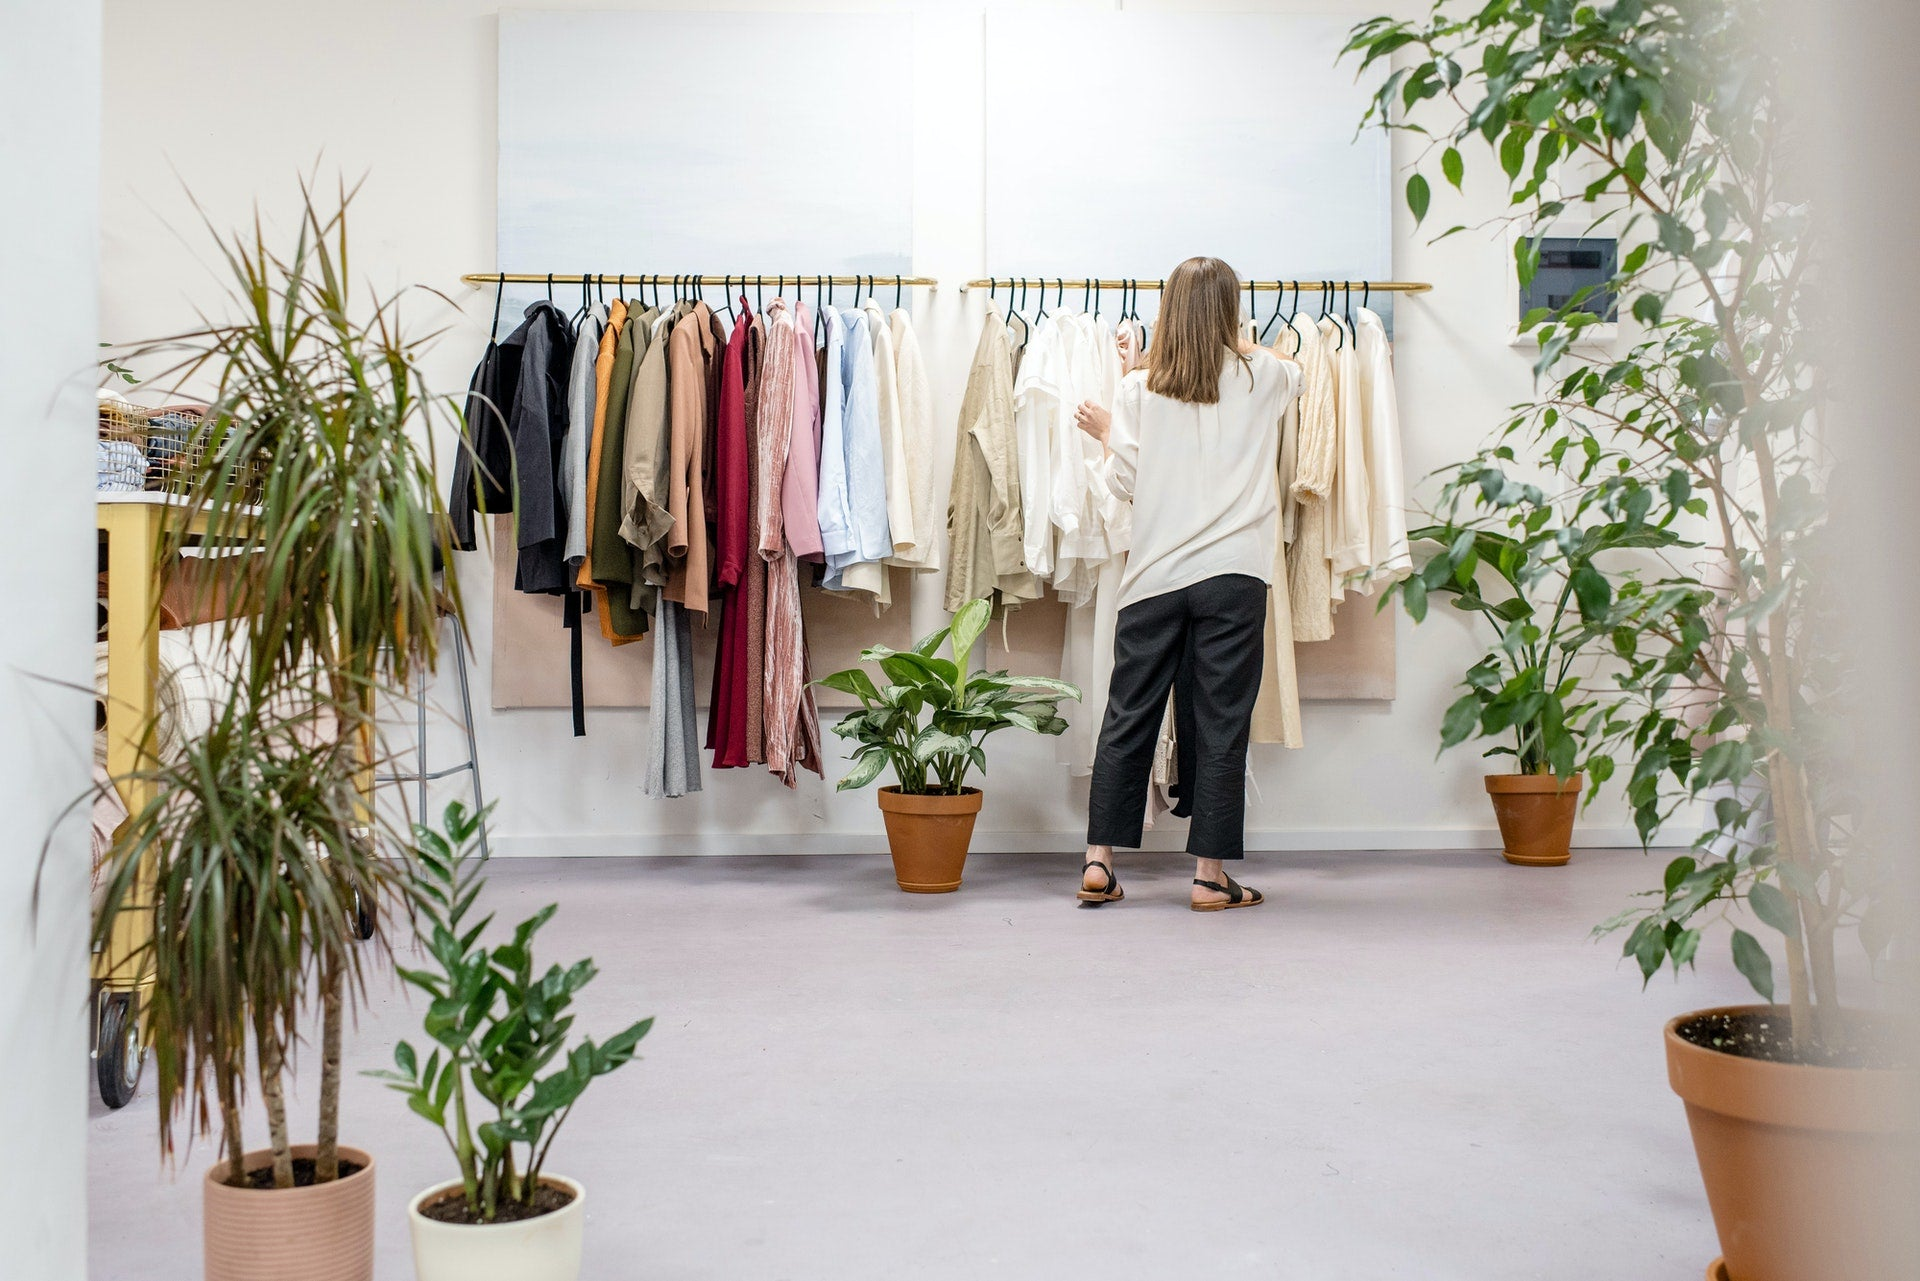 Declutter Your Closet with These 5 Simple Steps